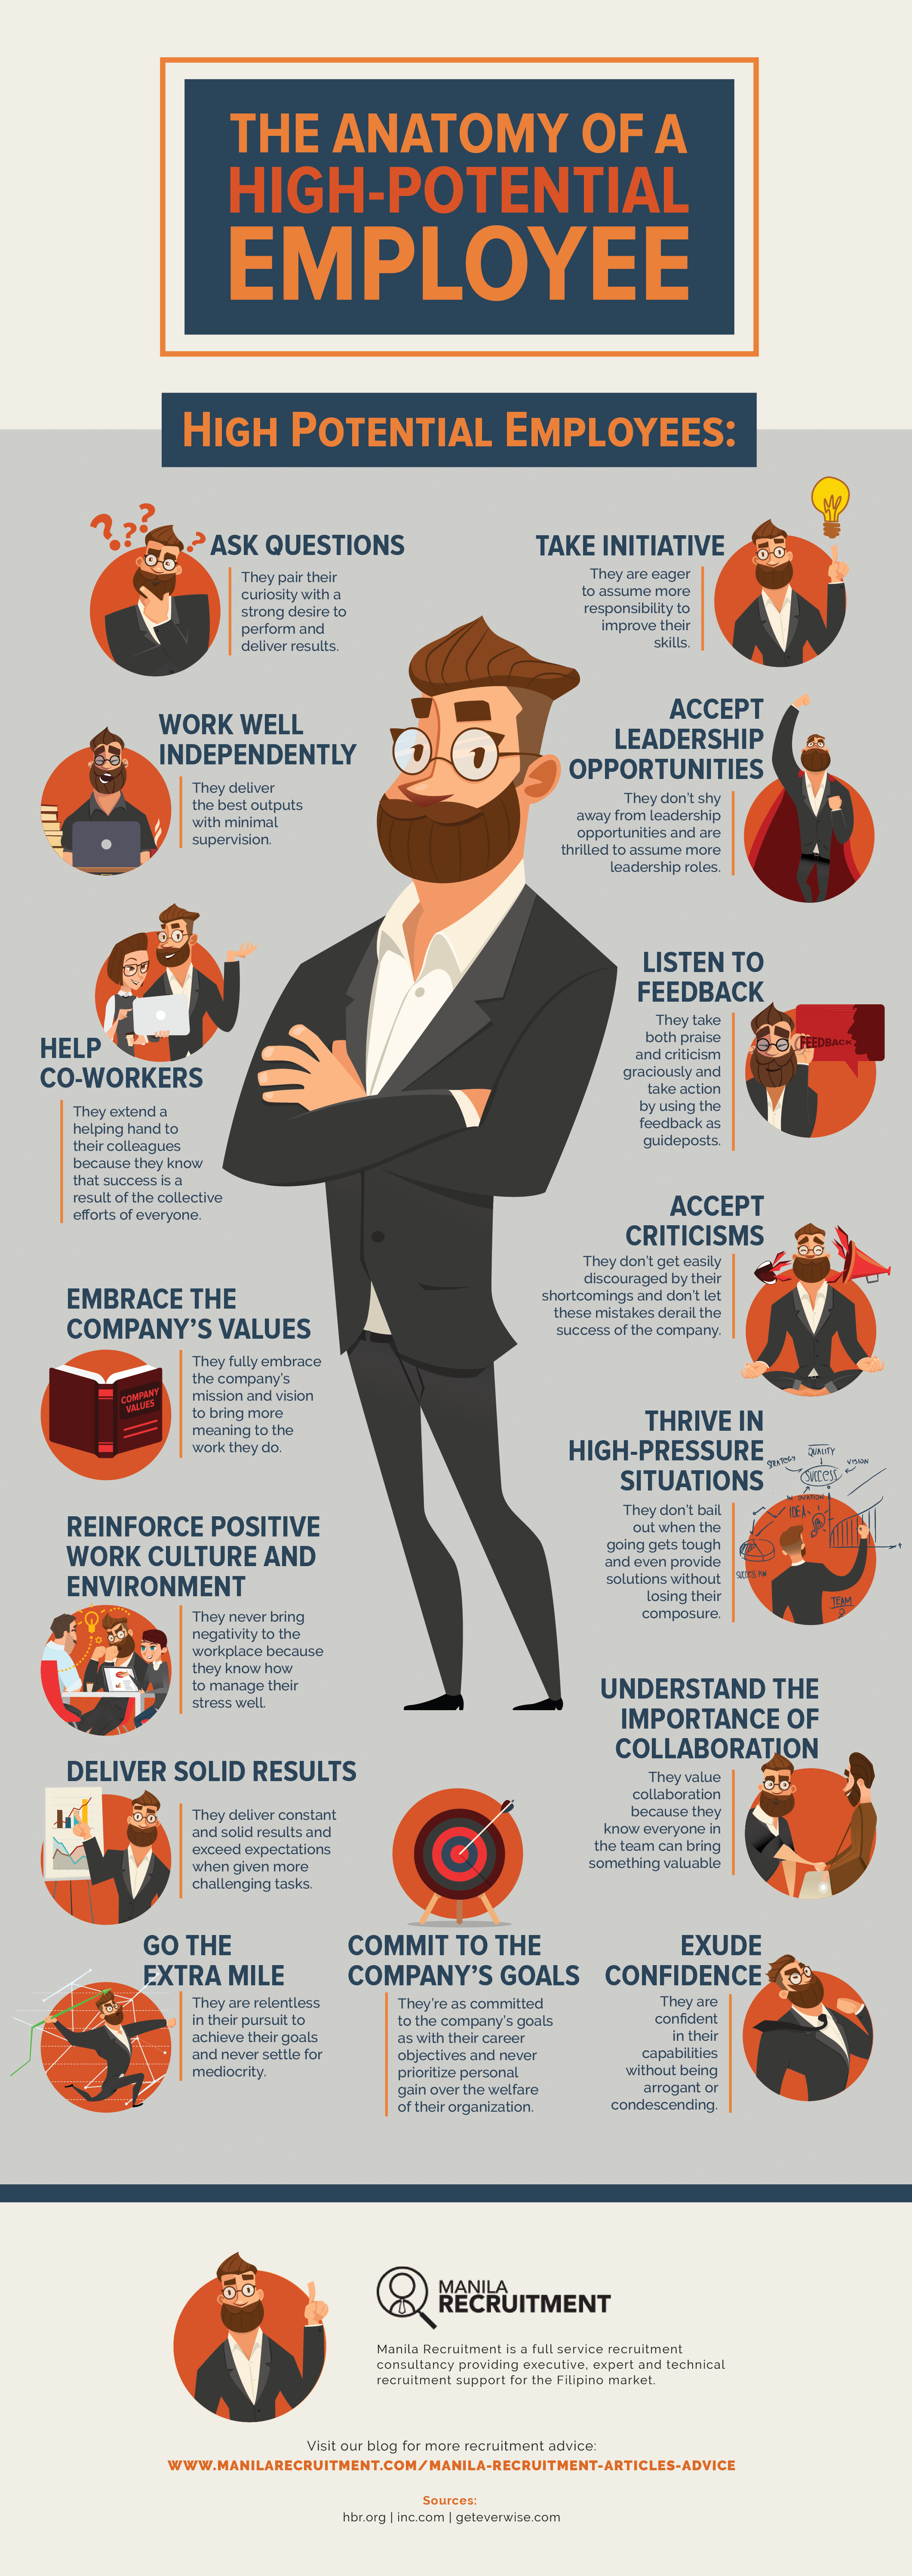 The Anatomy of a High-Potential Employee